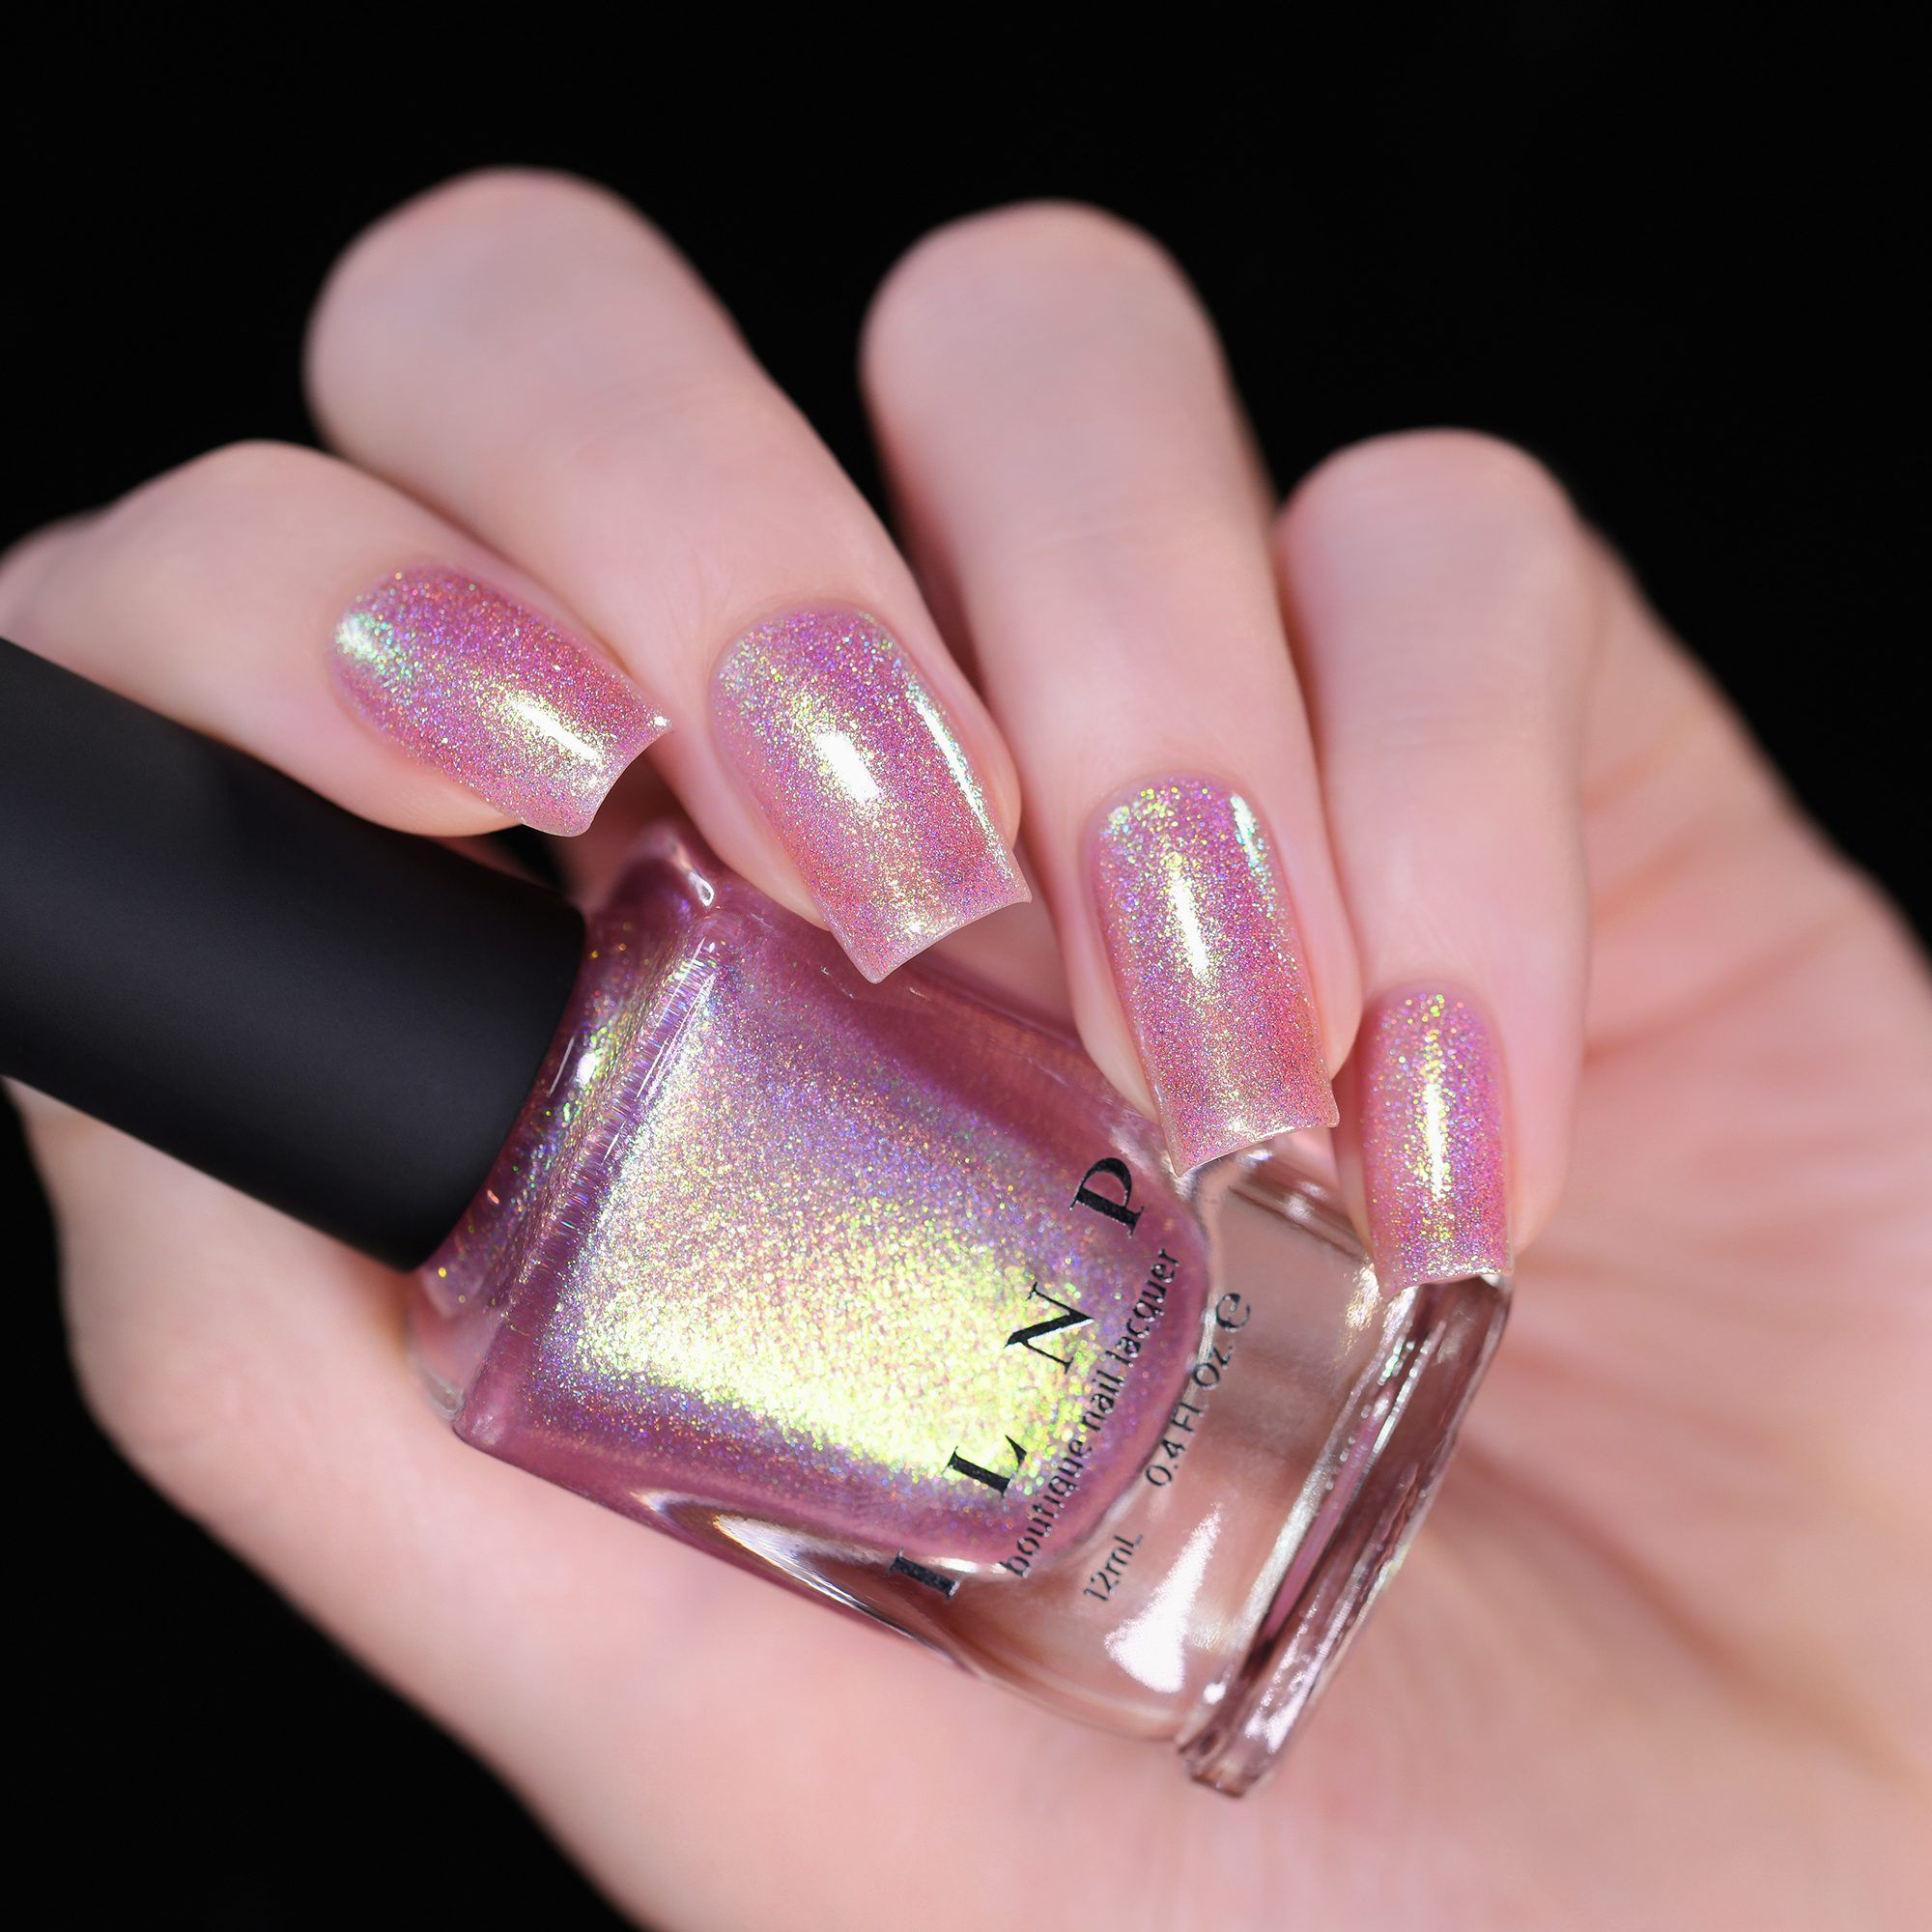 Opal Sunset Opalescent Pink Holographic Jelly Nail Polish By Ilnp Nail Polish Holographic Nail Polish Ilnp Nail Polish